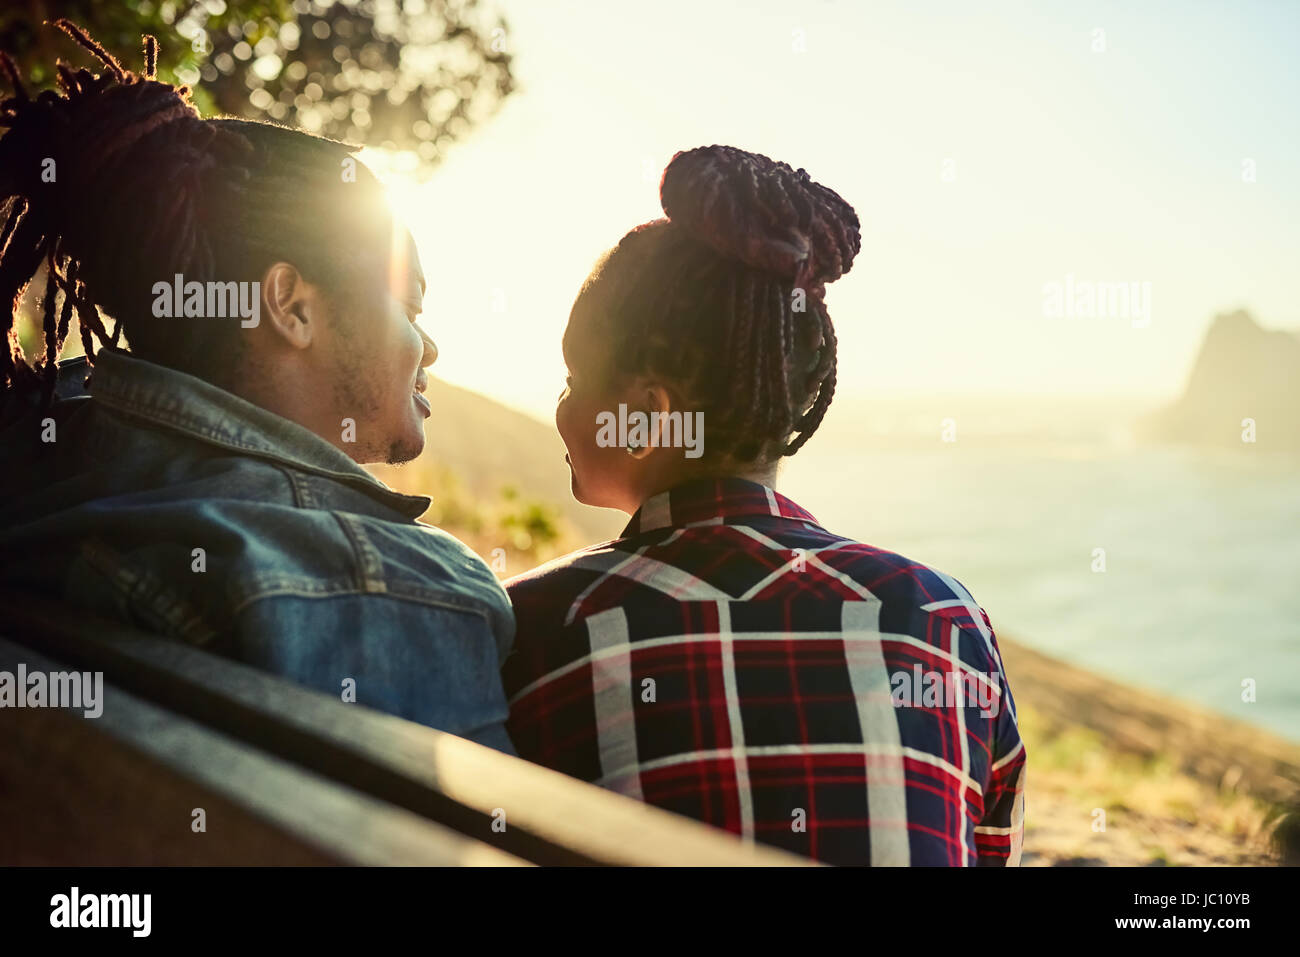 Couple of African descent sitting on a public viewpoint bench Stock Photo